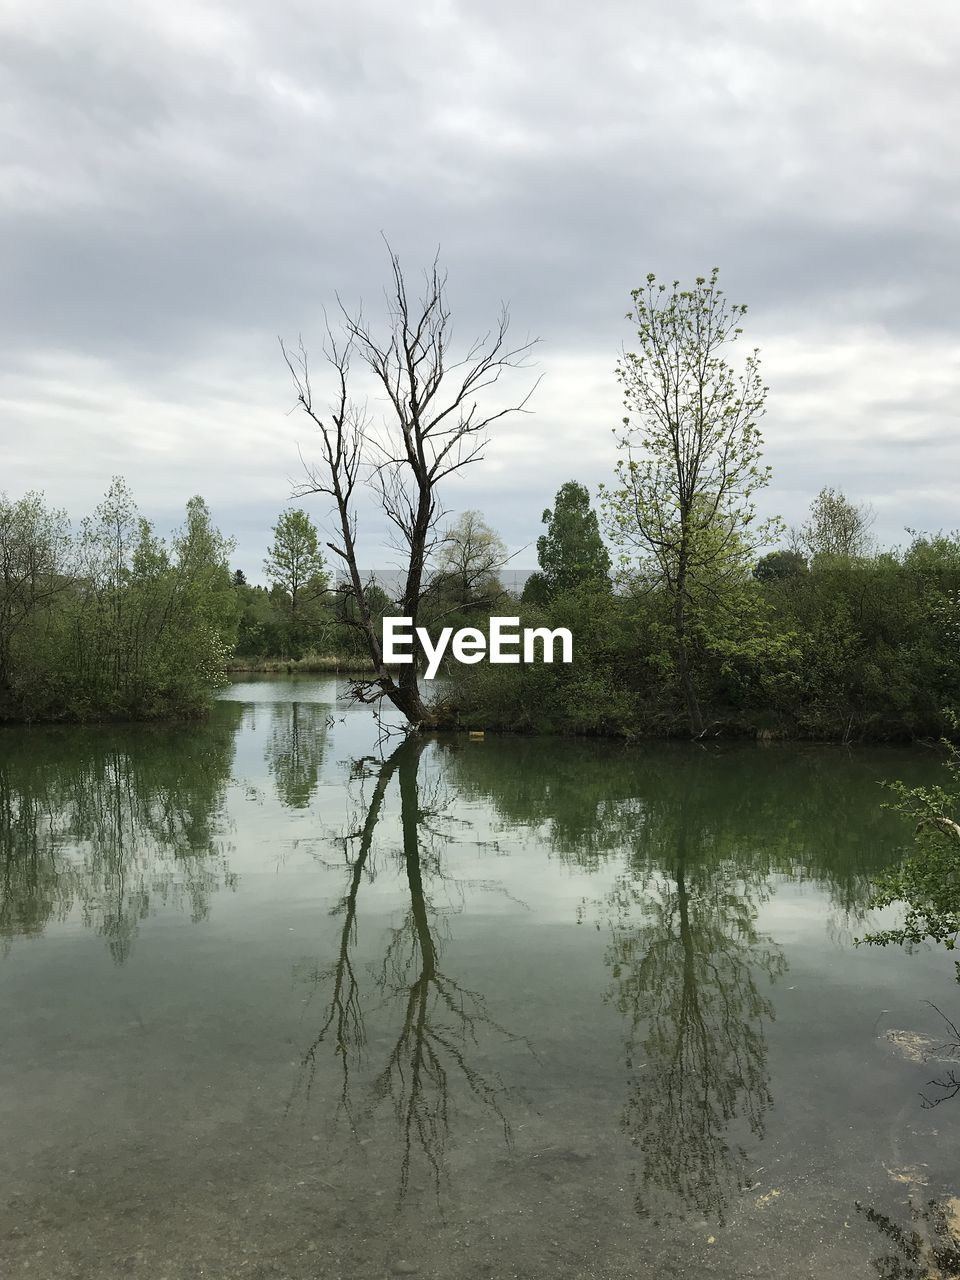 water, tree, plant, sky, cloud - sky, reflection, lake, tranquility, beauty in nature, tranquil scene, scenics - nature, nature, growth, waterfront, no people, day, non-urban scene, outdoors, idyllic, reflection lake